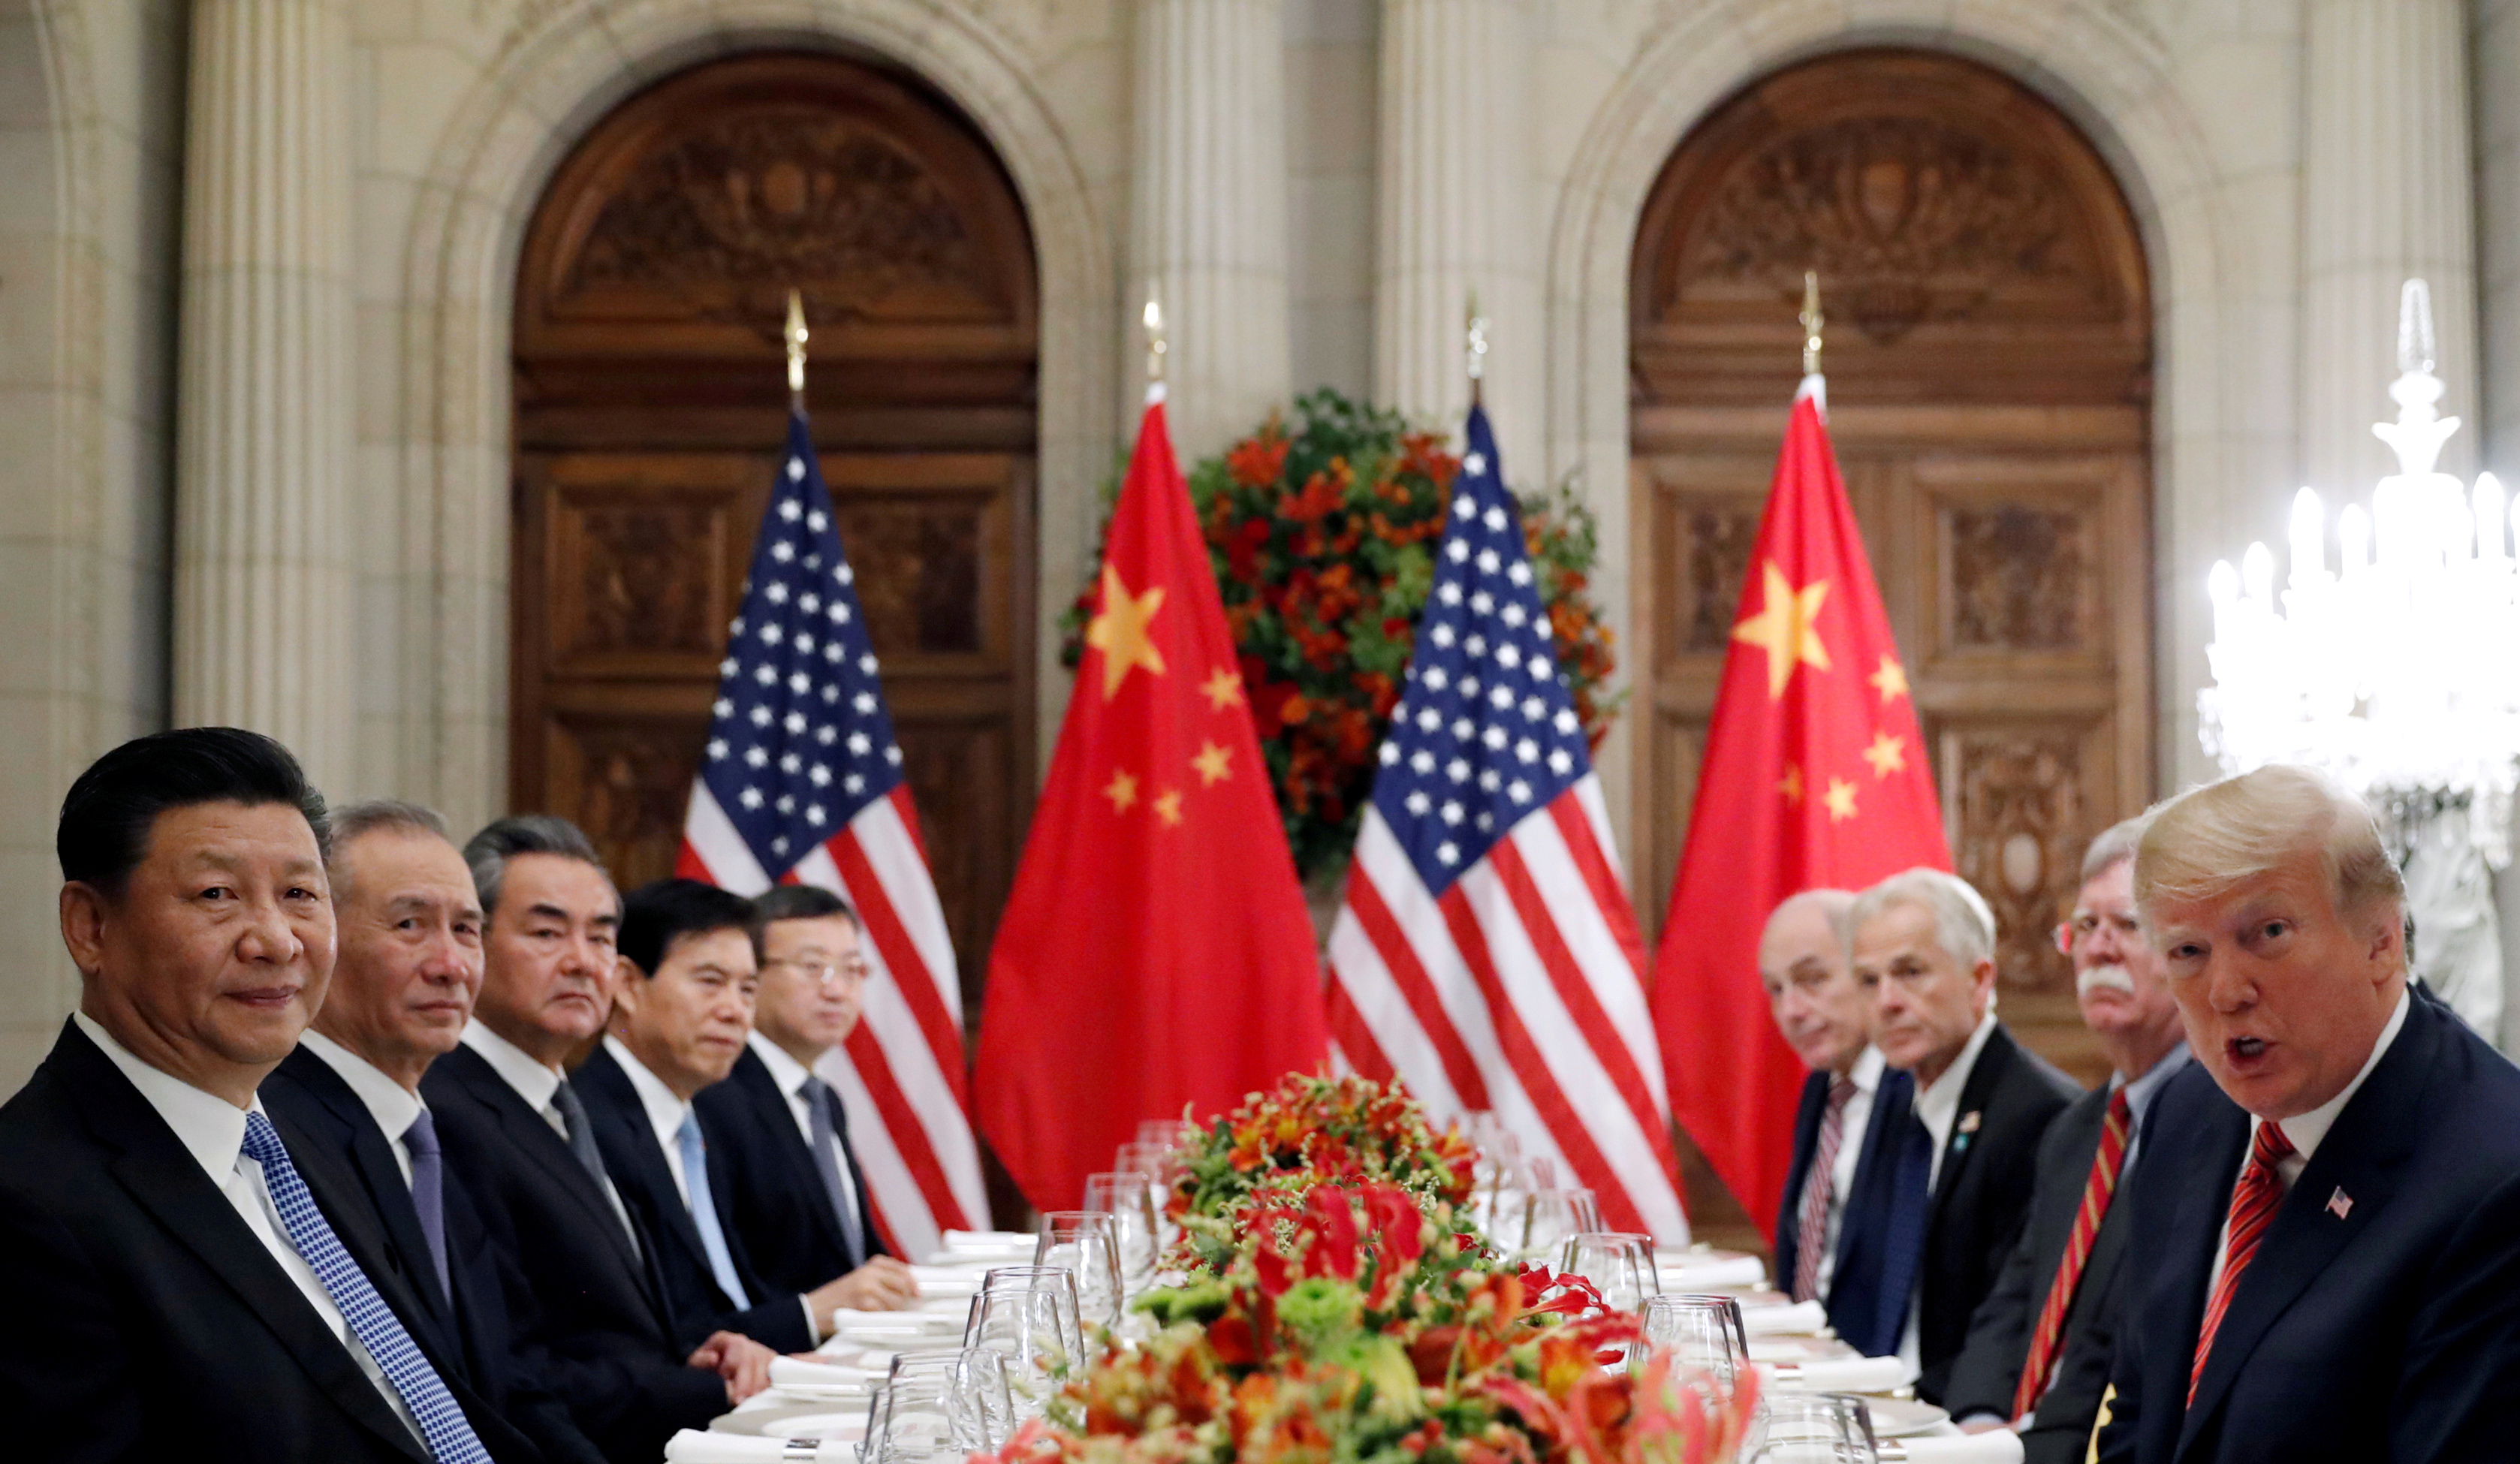 Donald Trump says US-China talks are 'going very well'